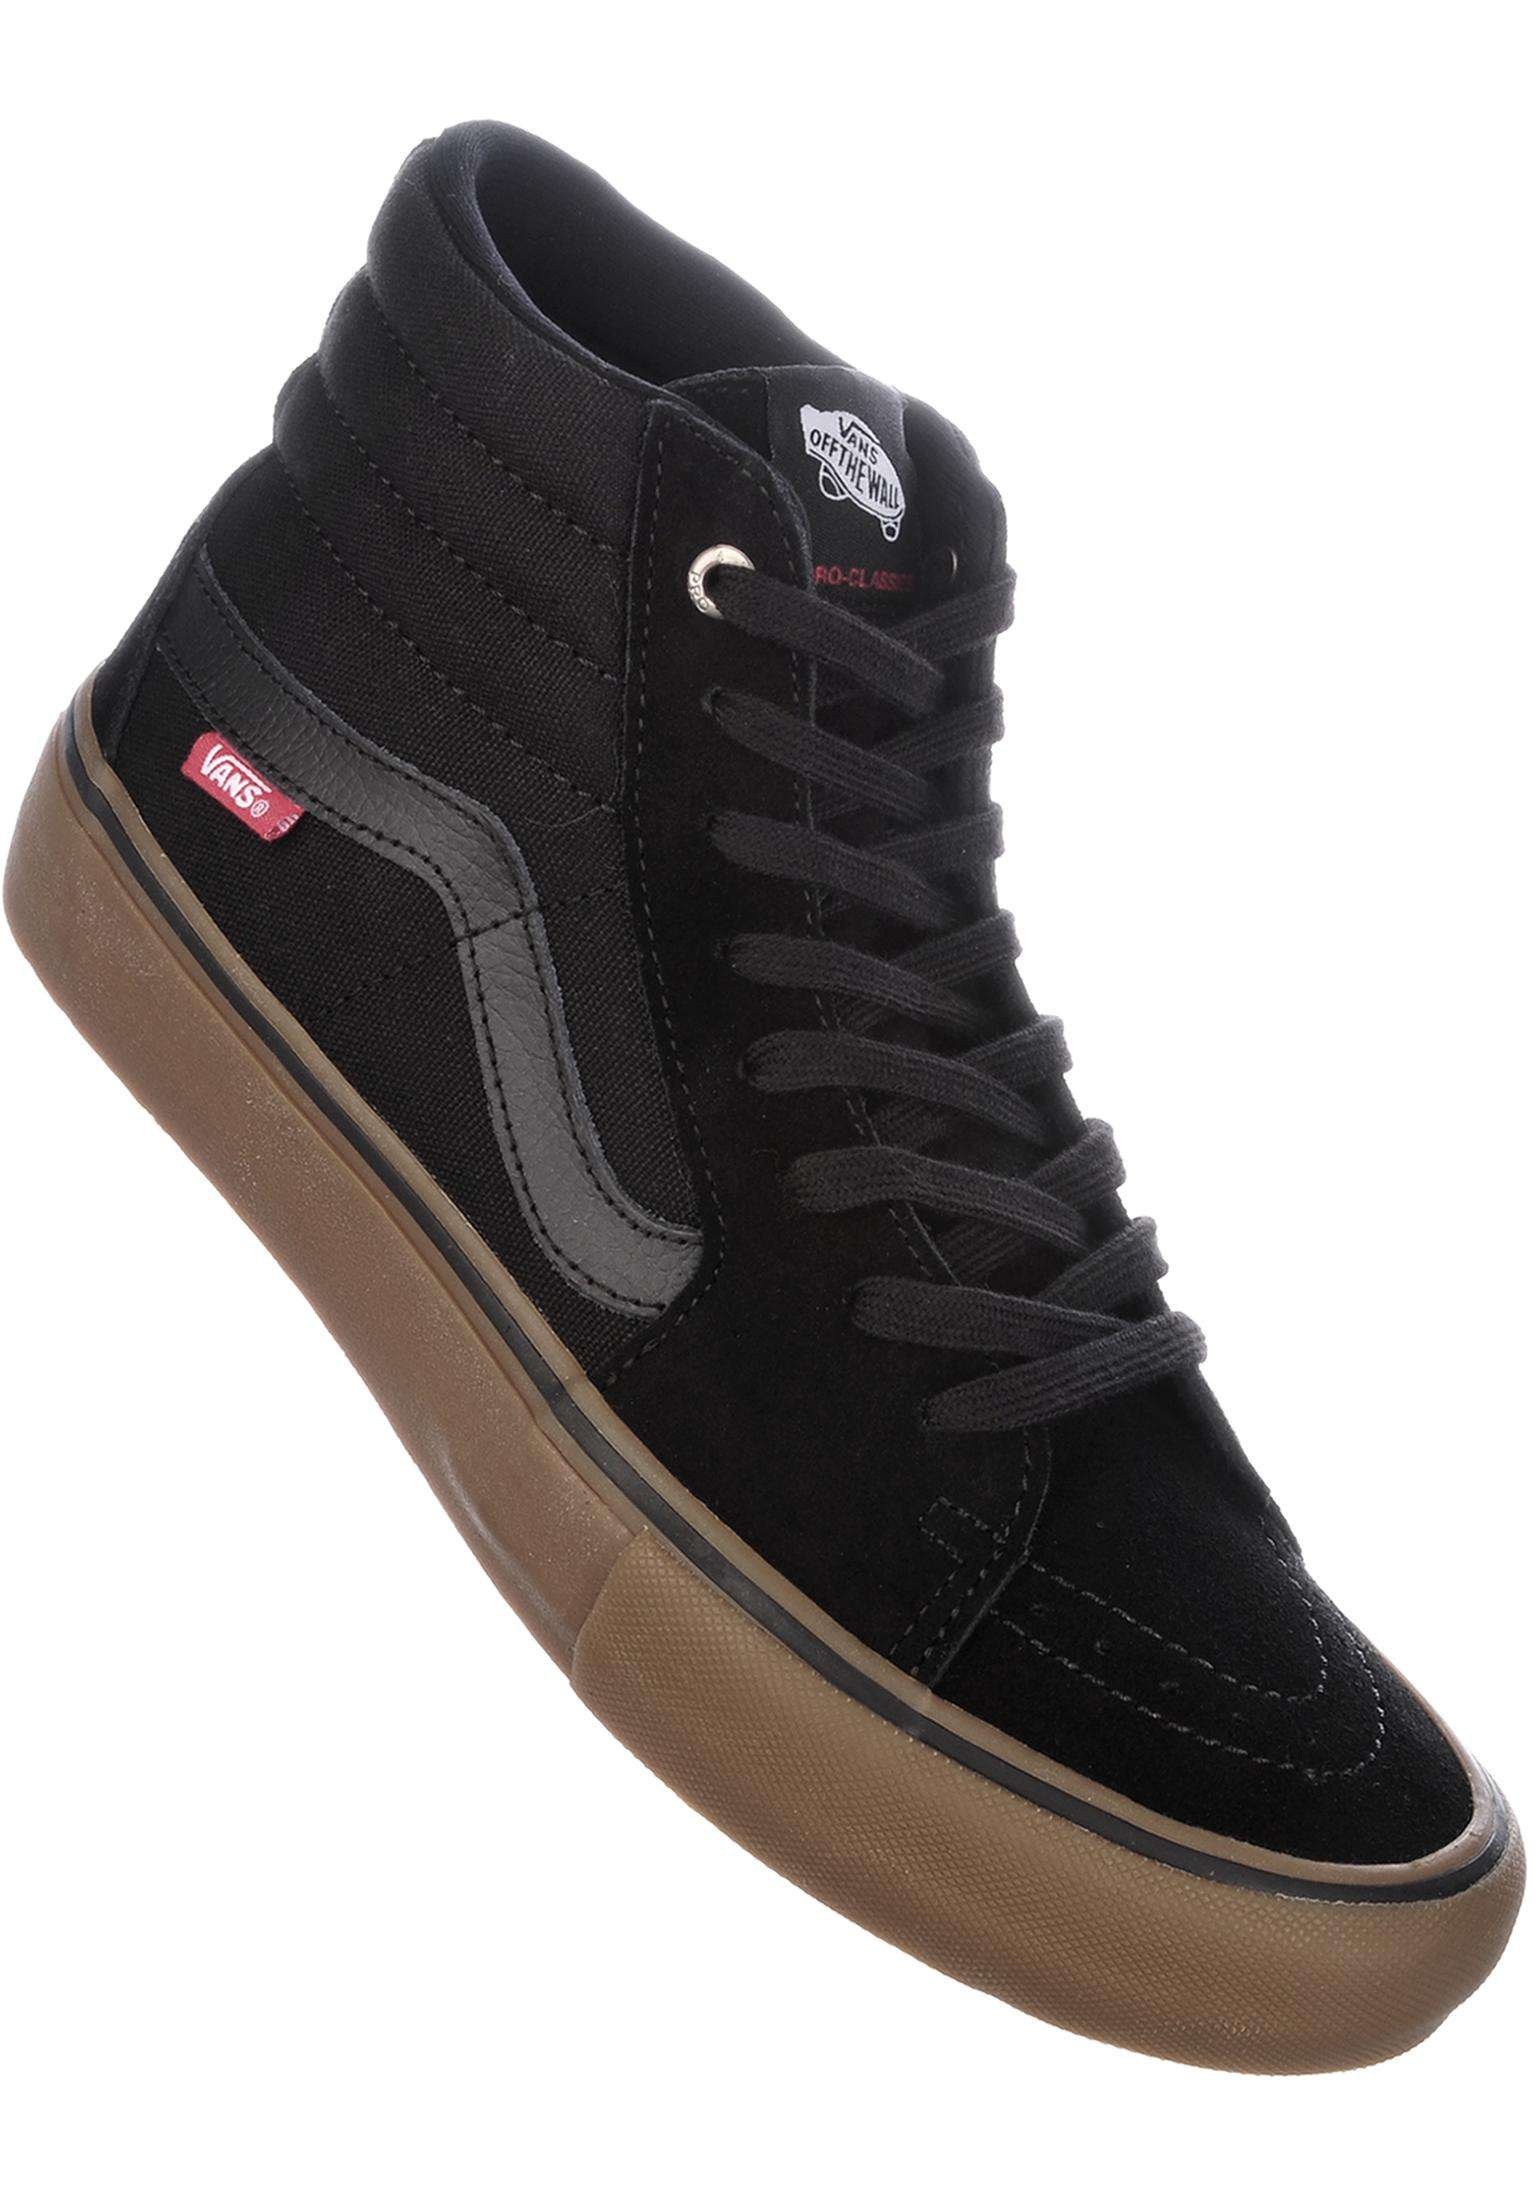 70368d96424 Sk8 Hi Pro Vans All Shoes in black-gum for Men